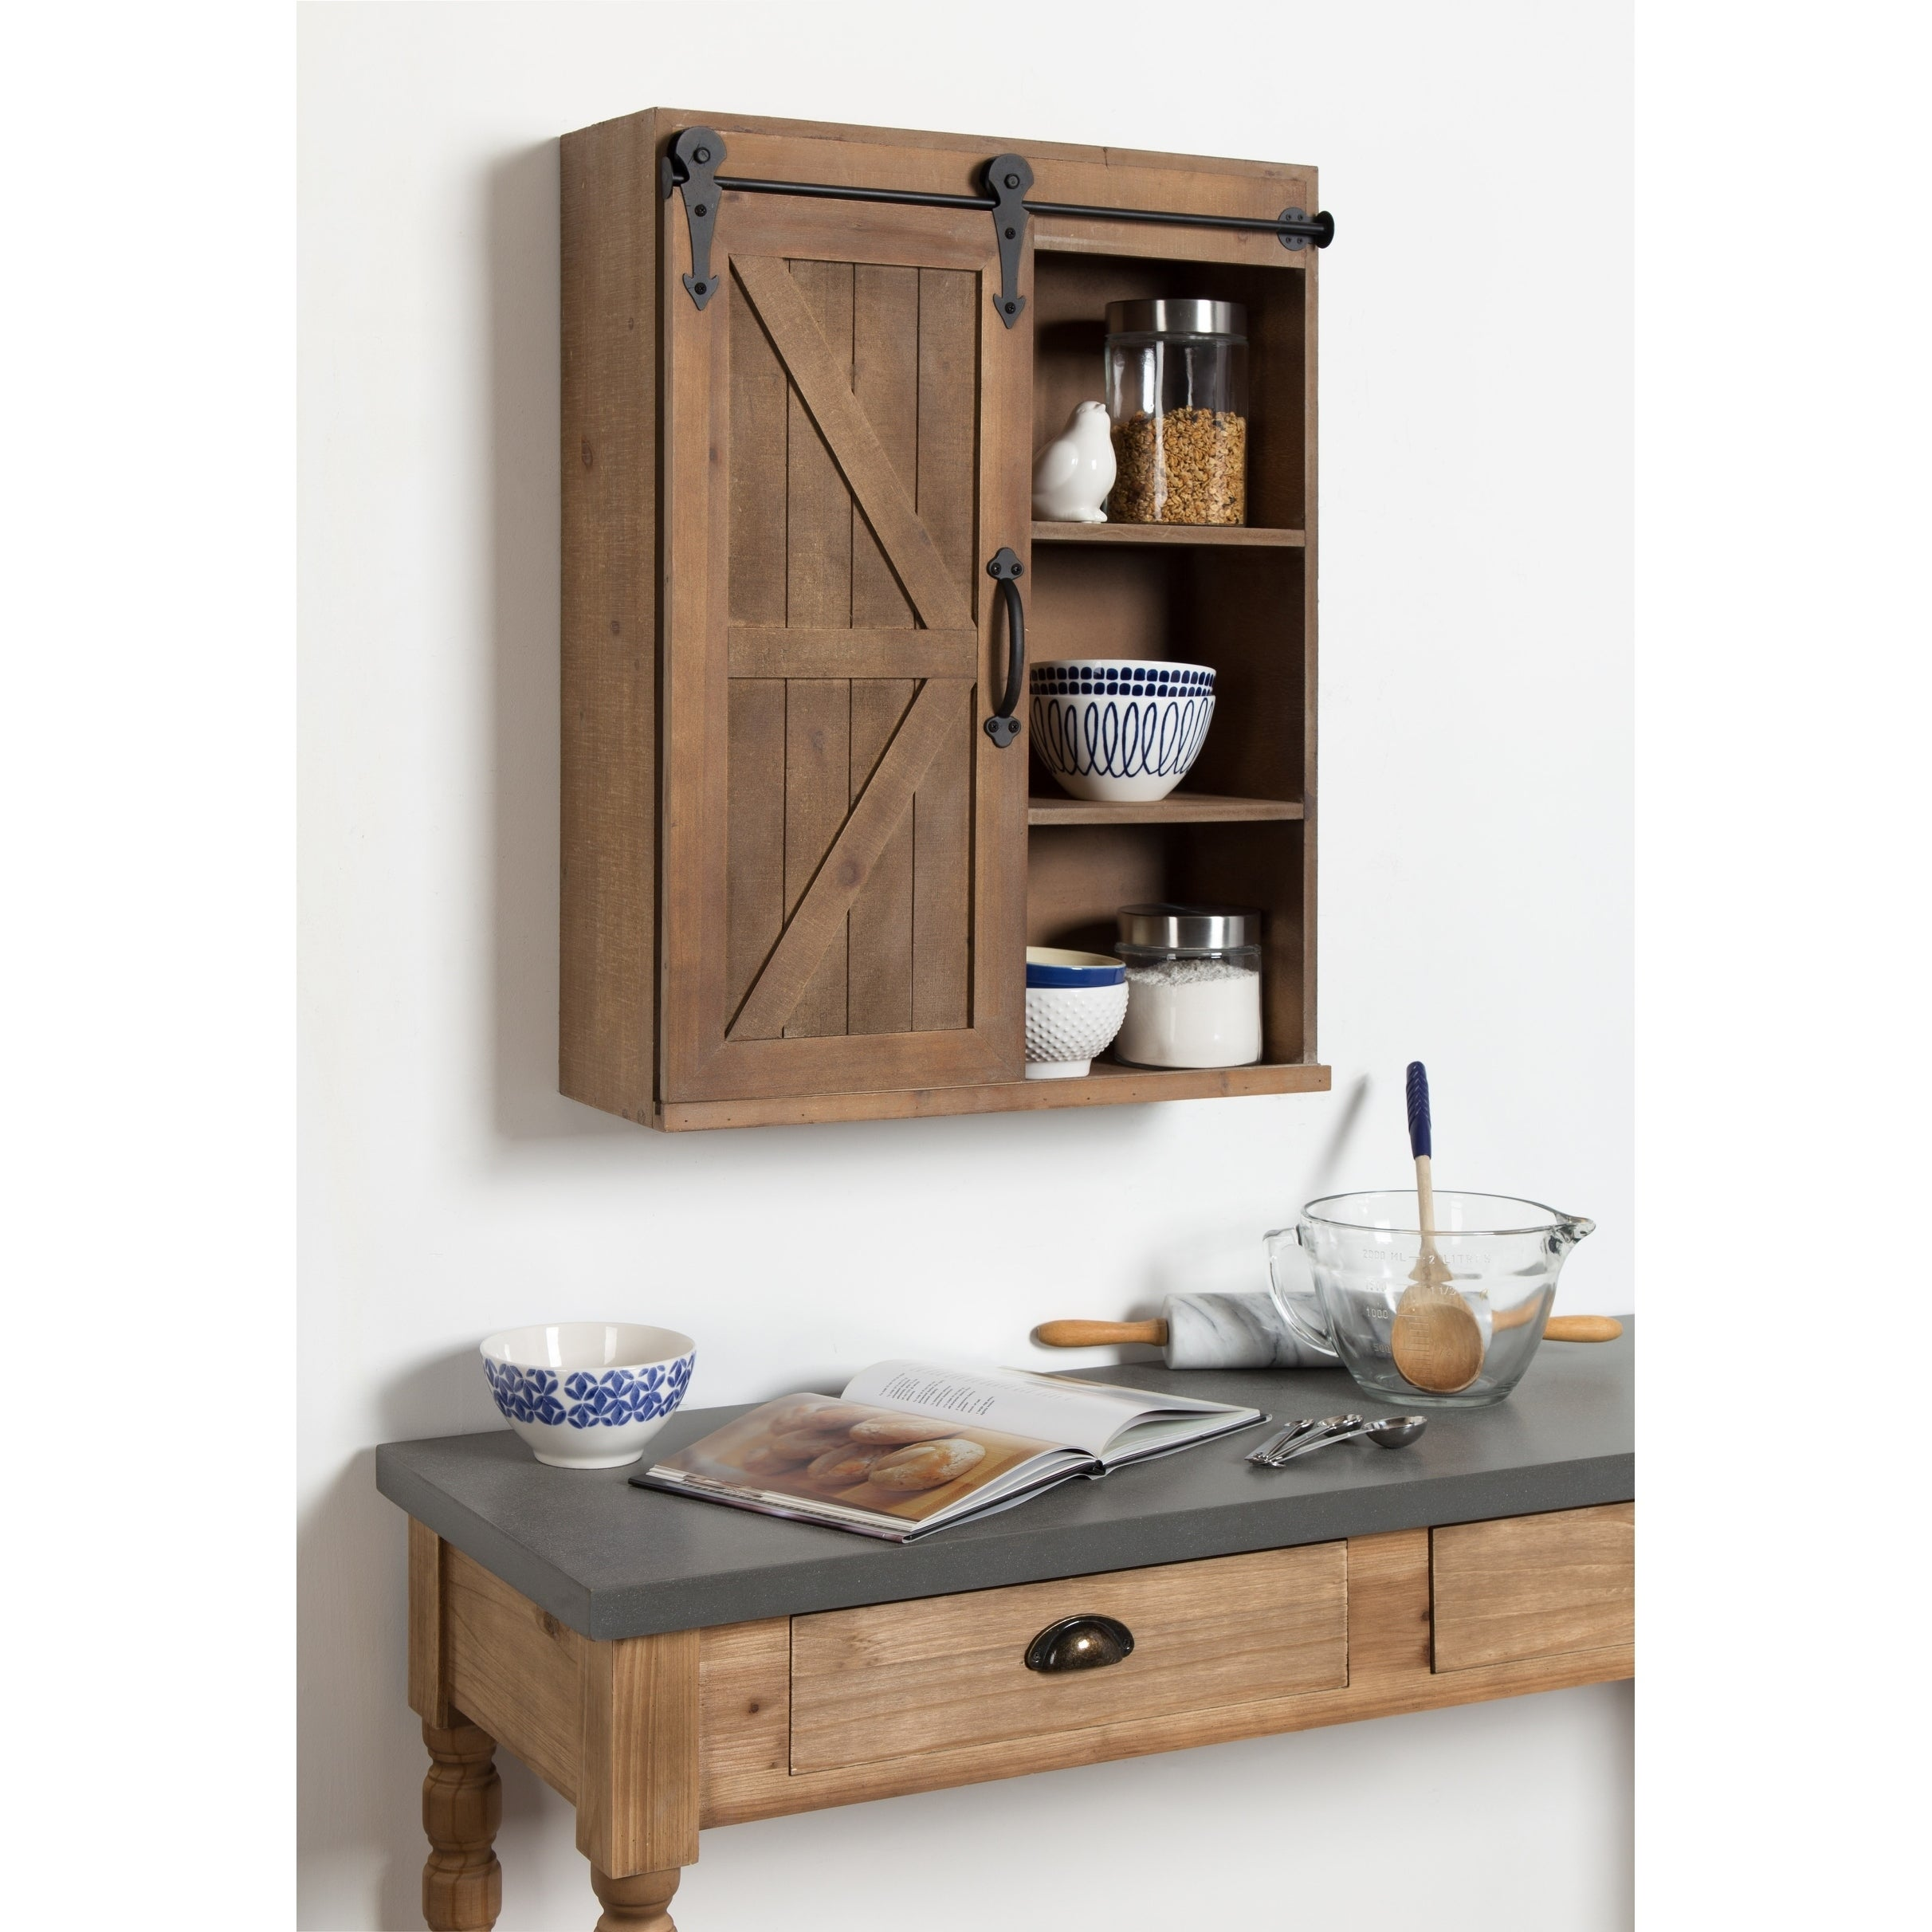 Kate And Laurel Cates Wood Wall Storage Cabinet With Sliding Barn